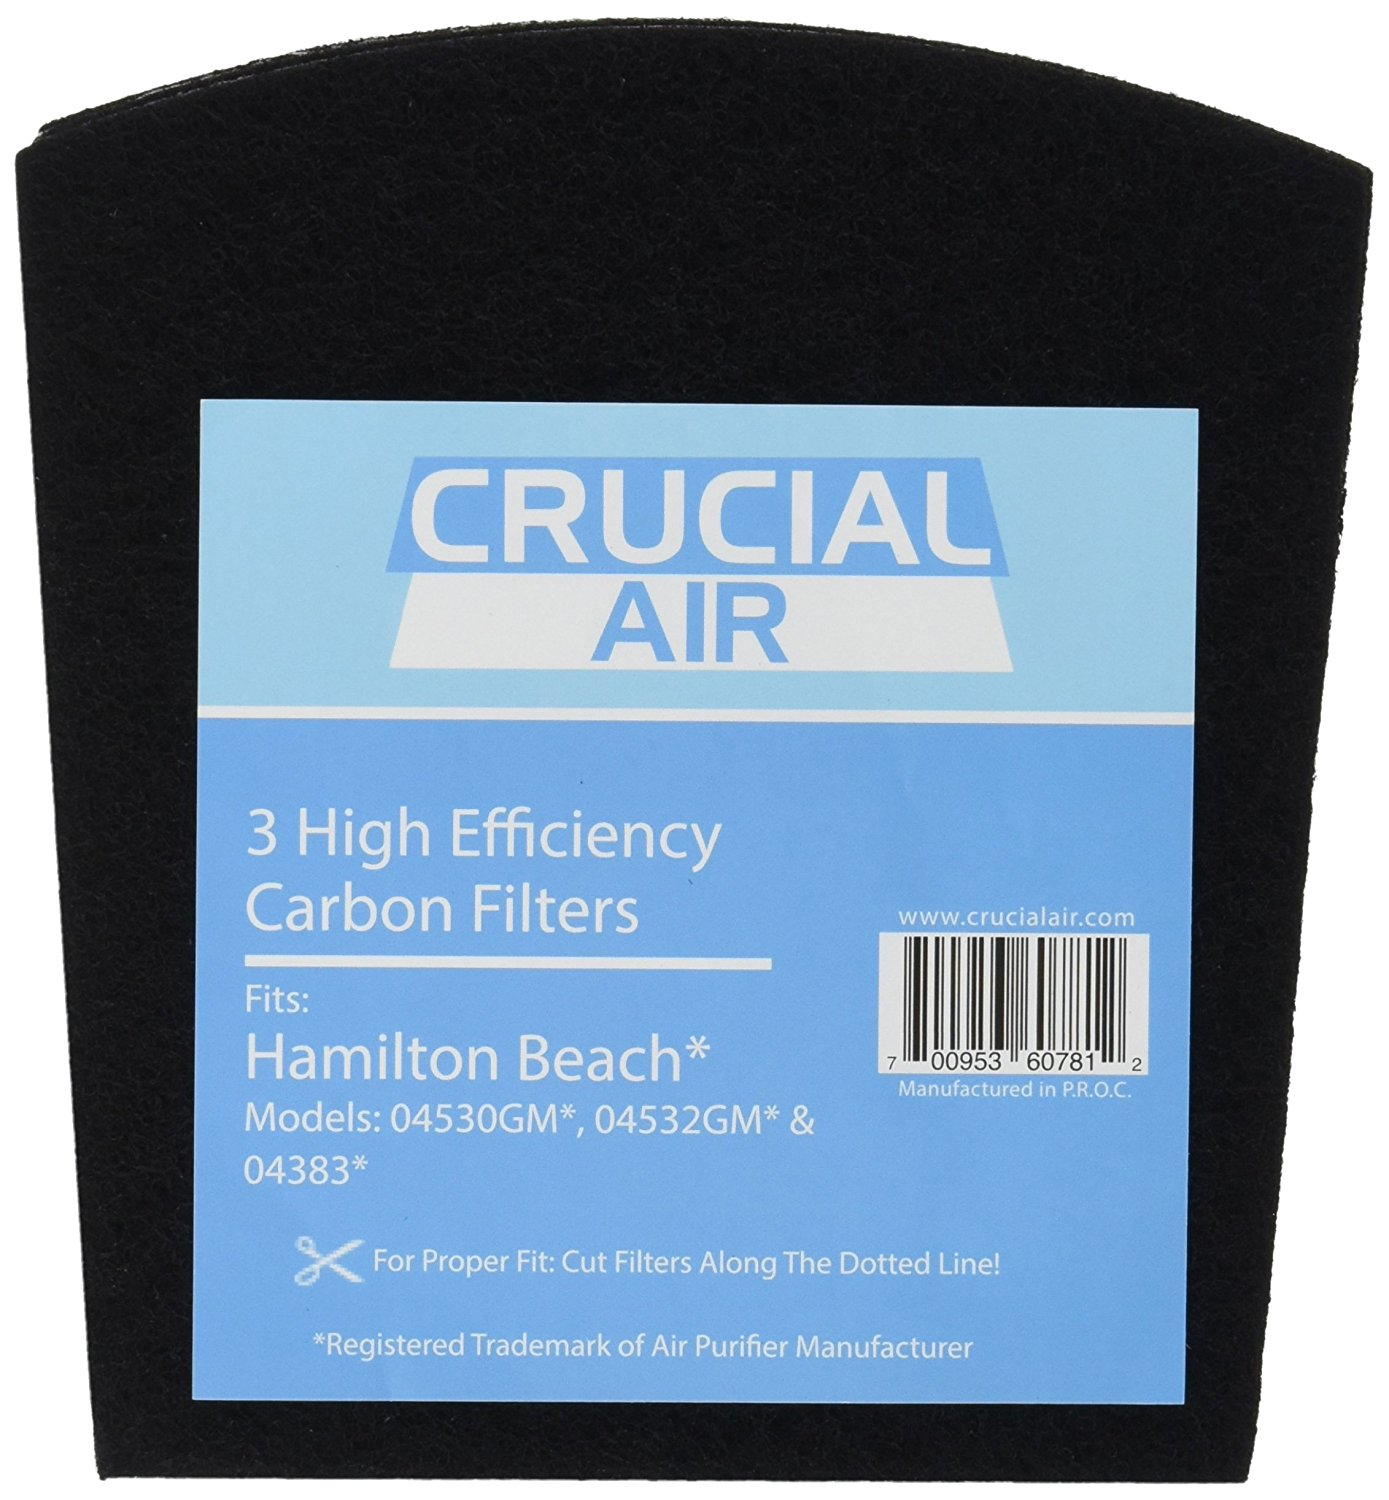 3 Replacement Carbon Filters for Hamilton Beach True Air Odors 04530GM 04532GM 04383 04531GM 04530F 04532GM 04251 04271 04530 04530F Part 04294 By Crucial Air